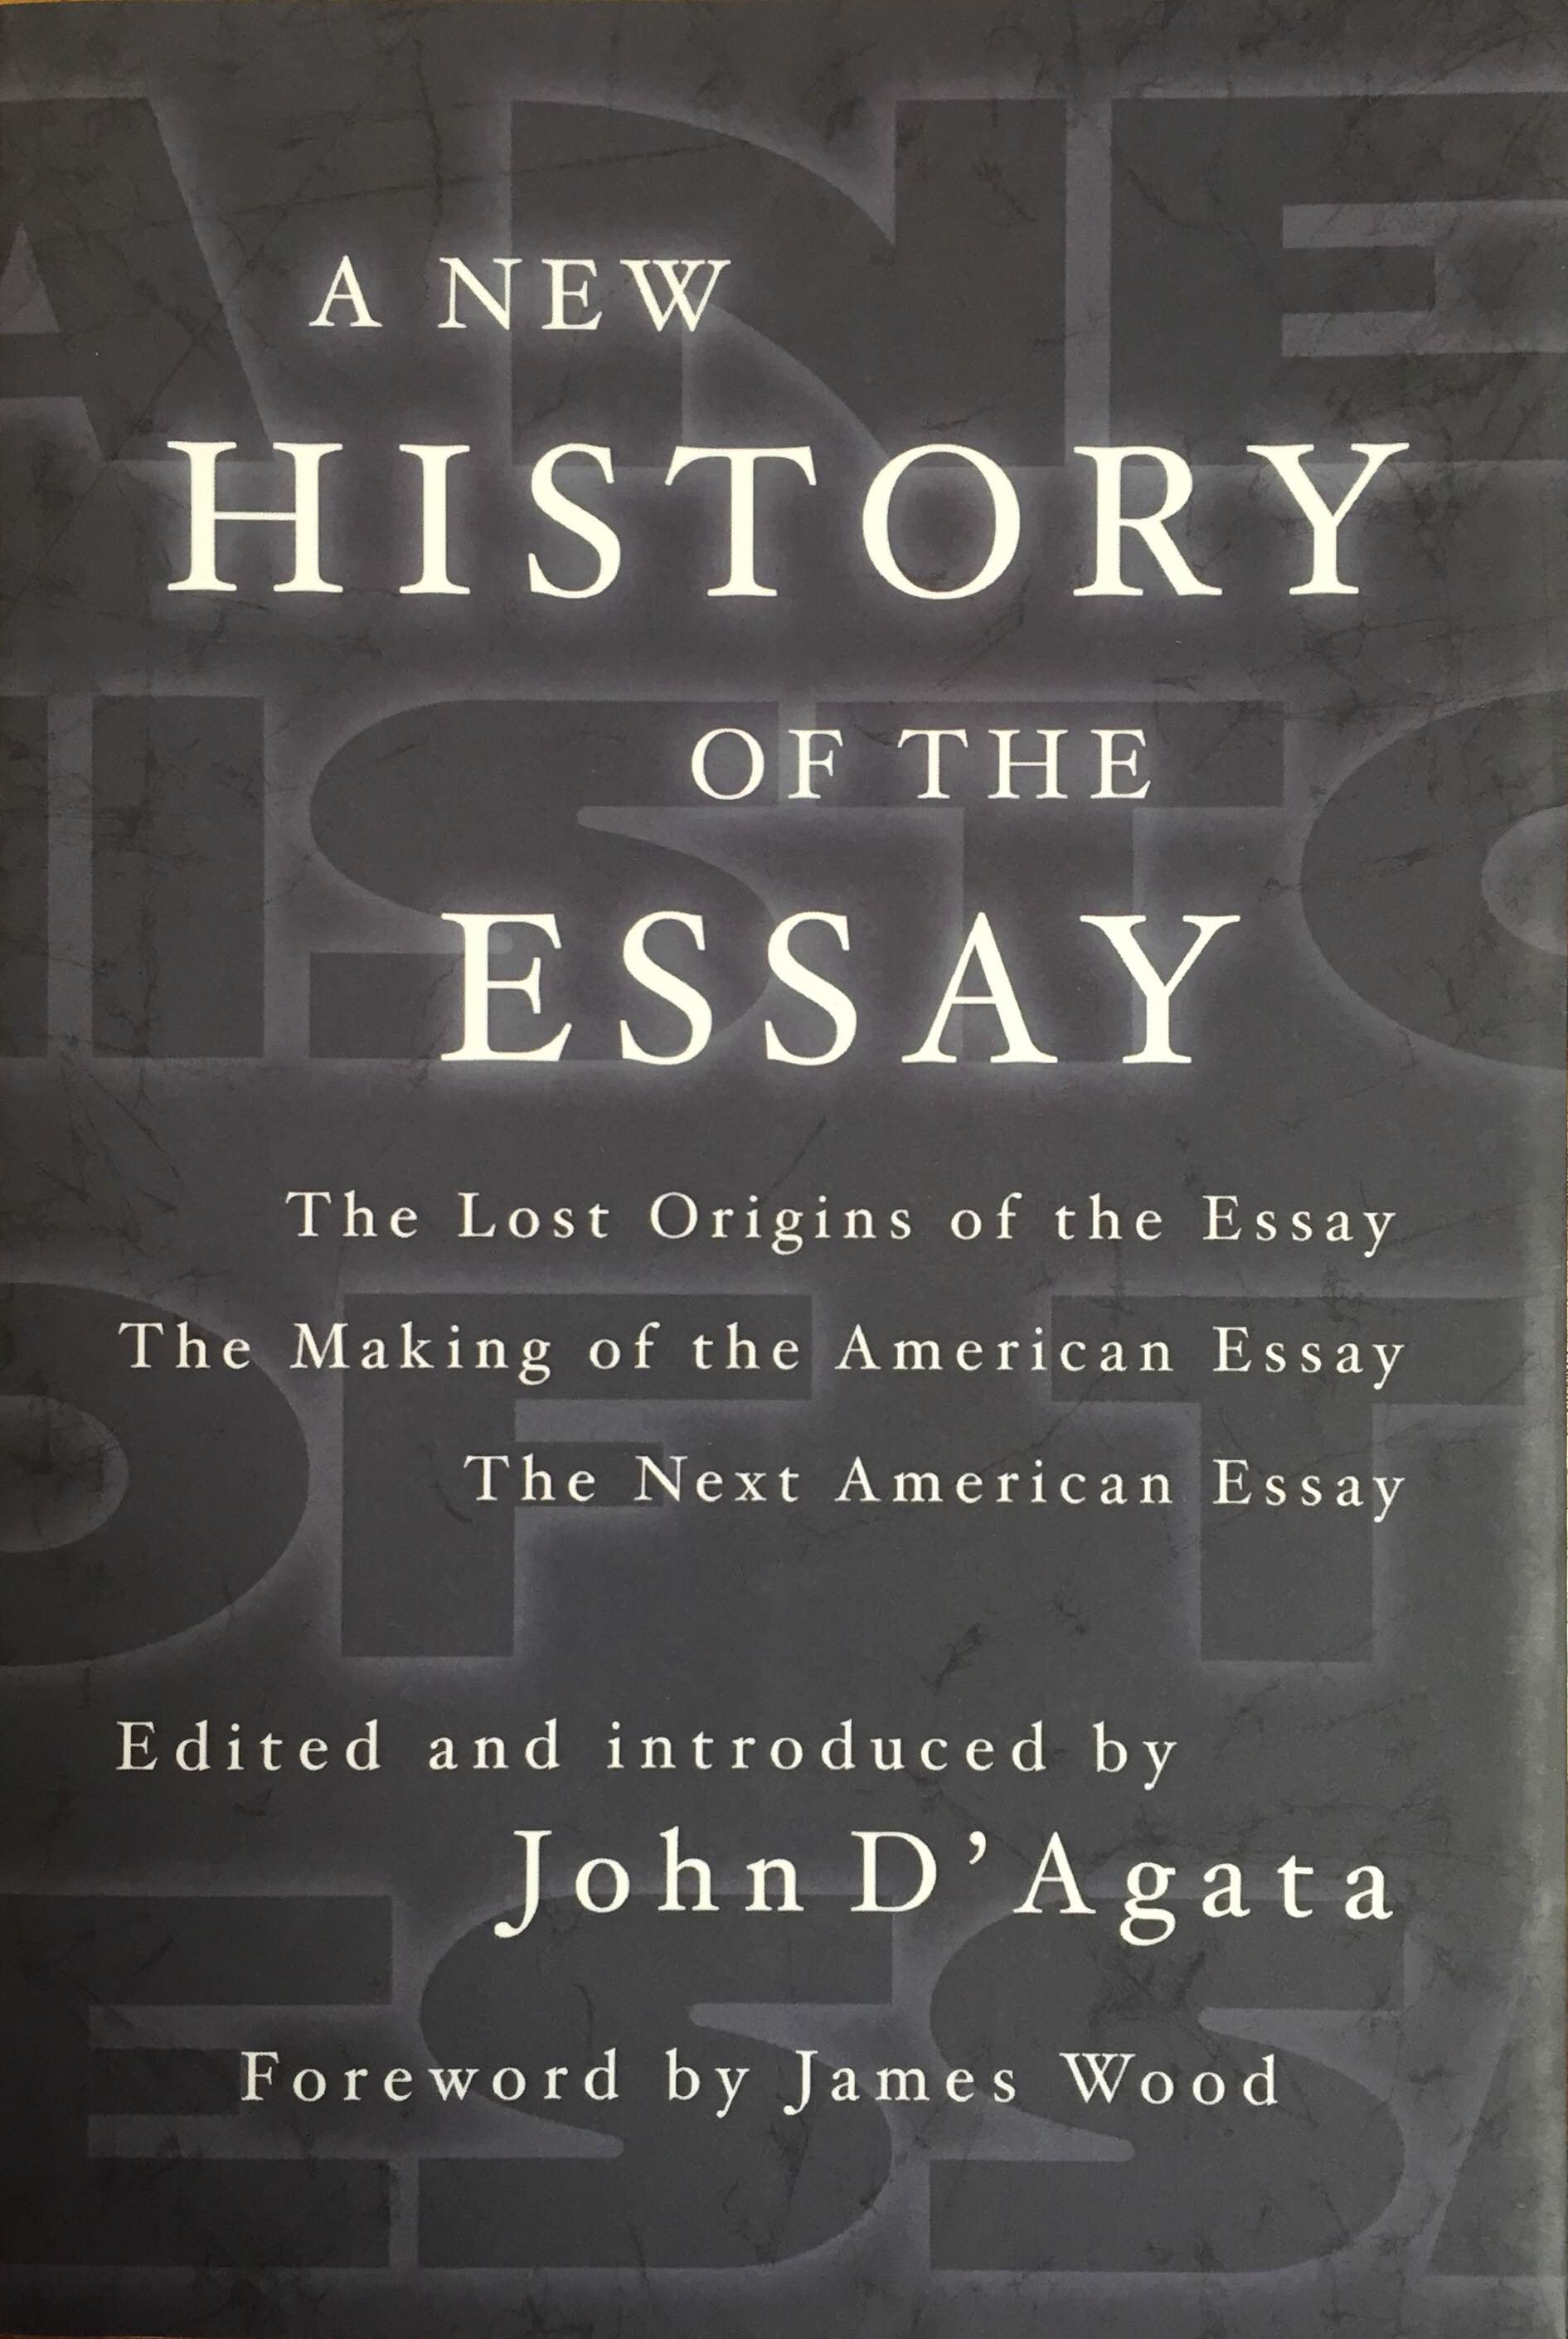 History of english essay